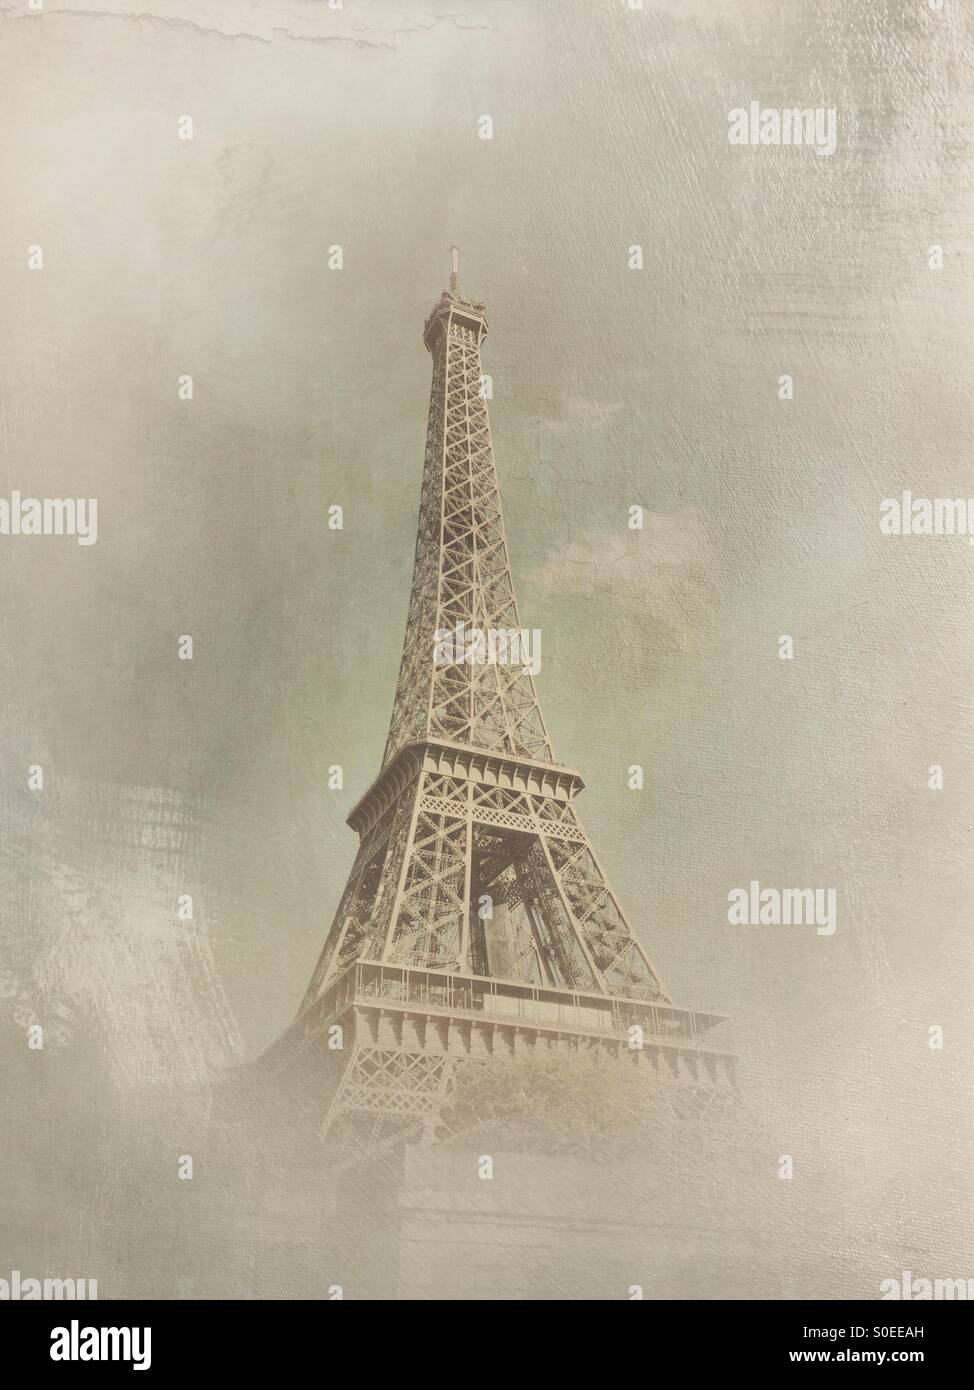 View of Eiffel Tower from cruise boat on Seine River in Paris, France. Vintage texture overlay. Stock Photo